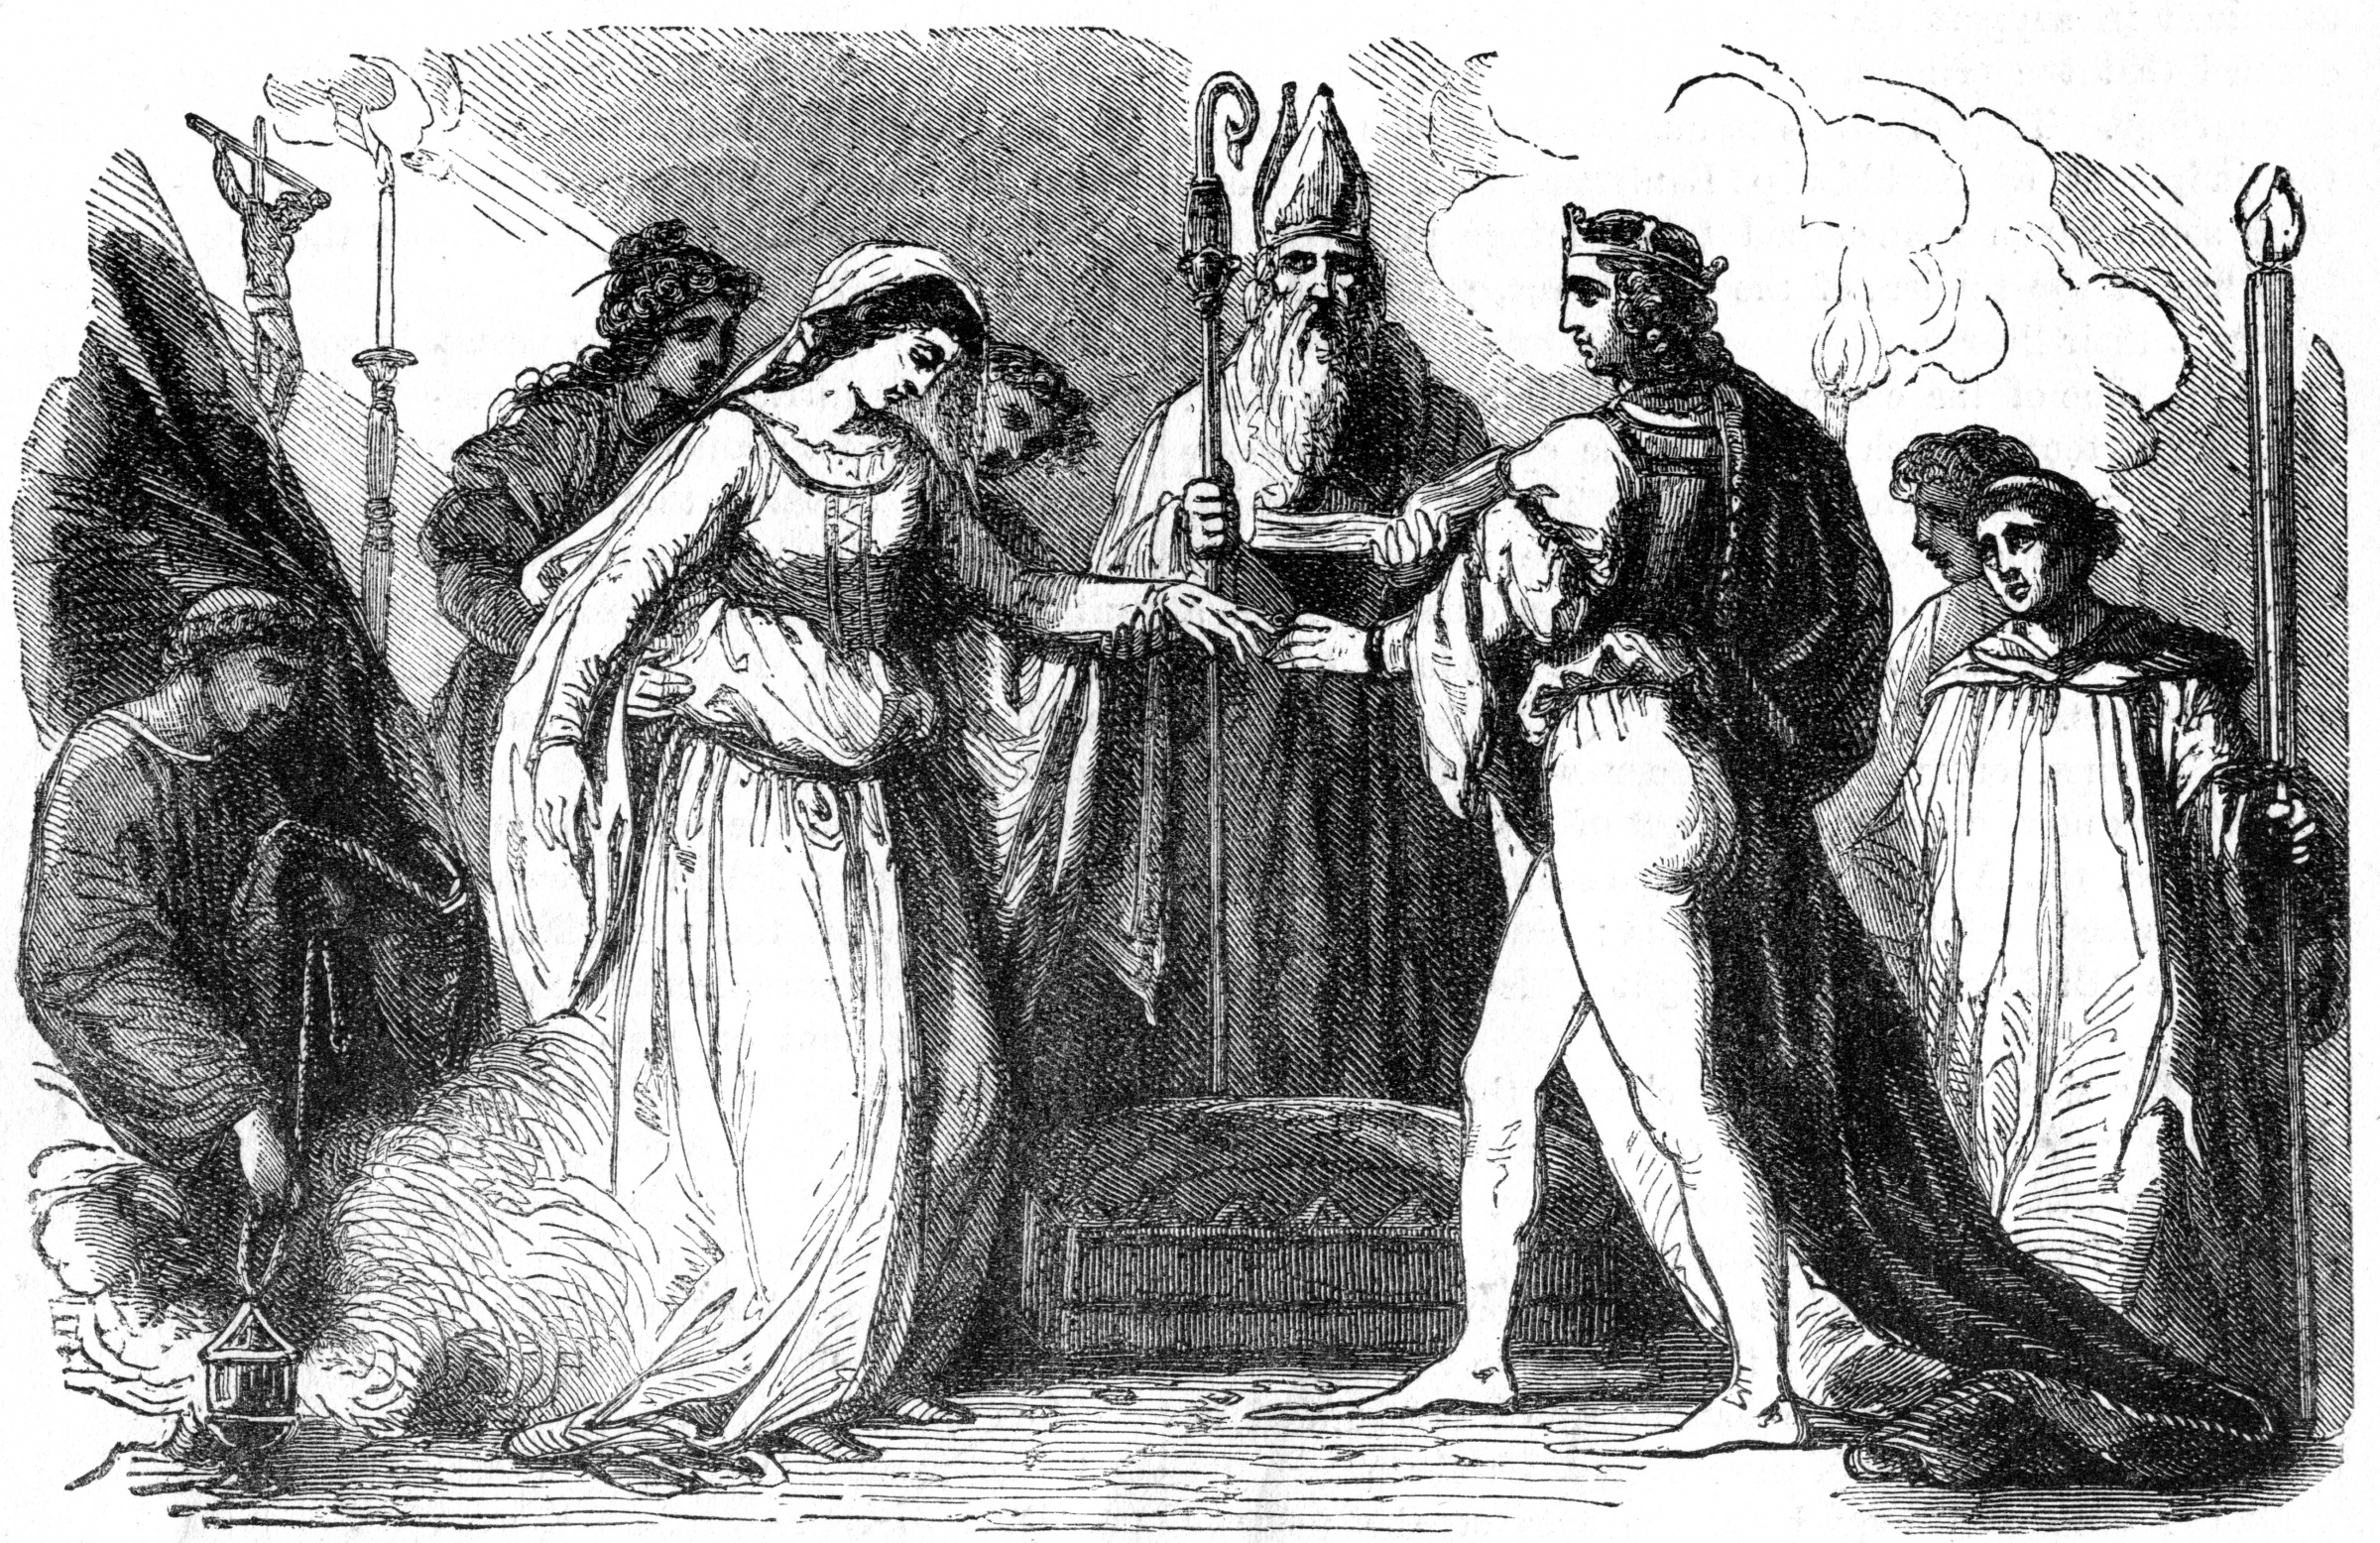 A depiction of the marriage of Henry I and Matilda of Scotland